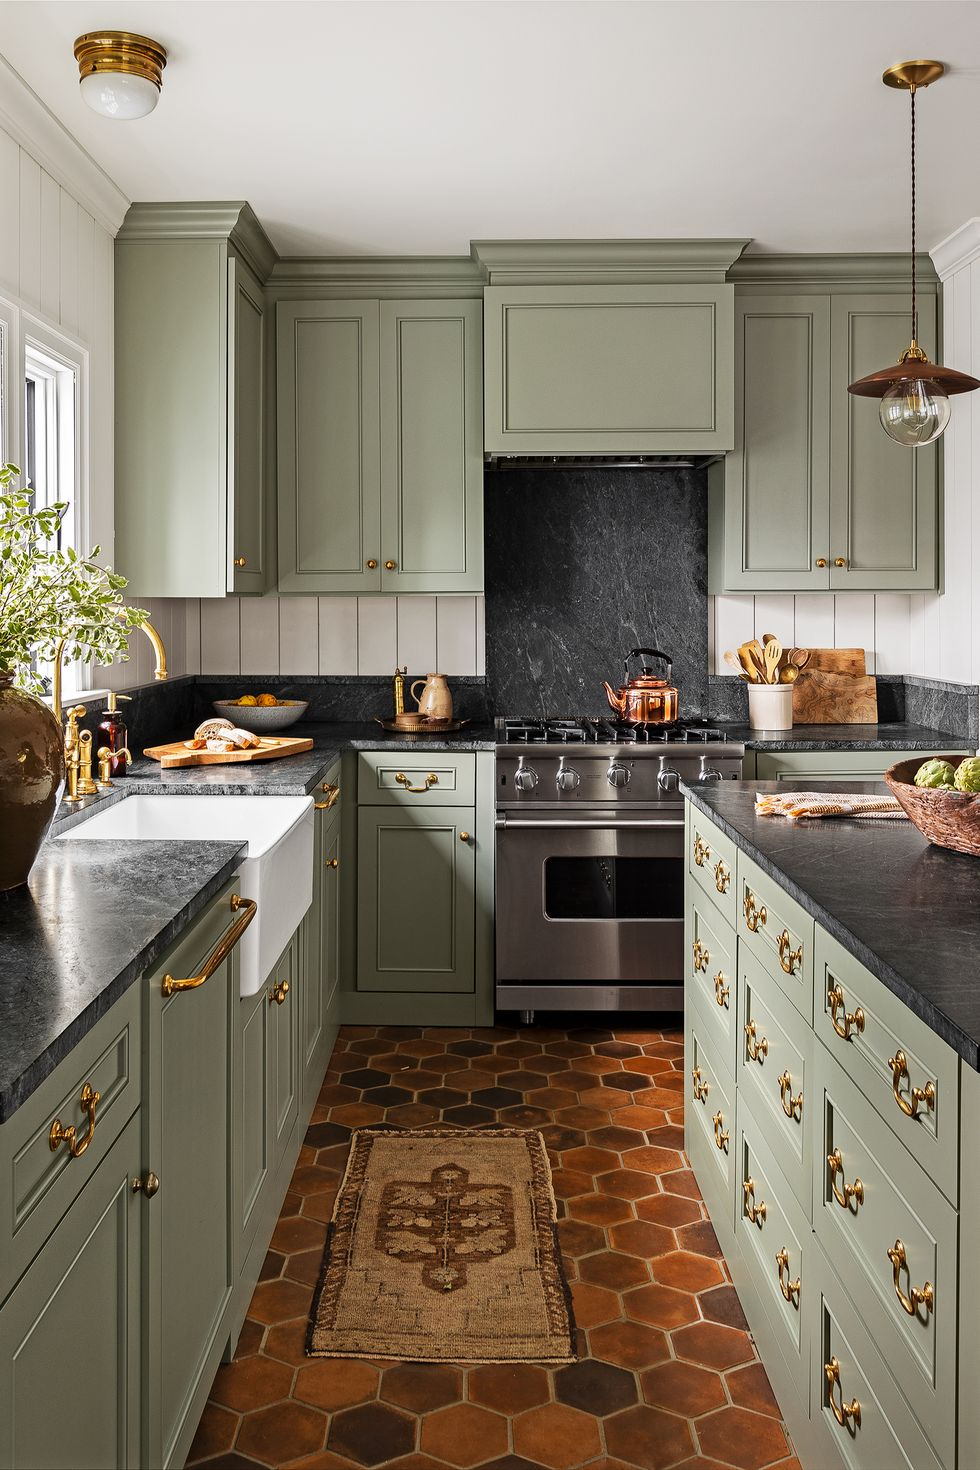 Go Green With These Beautiful Kitchen Cabinet Colors